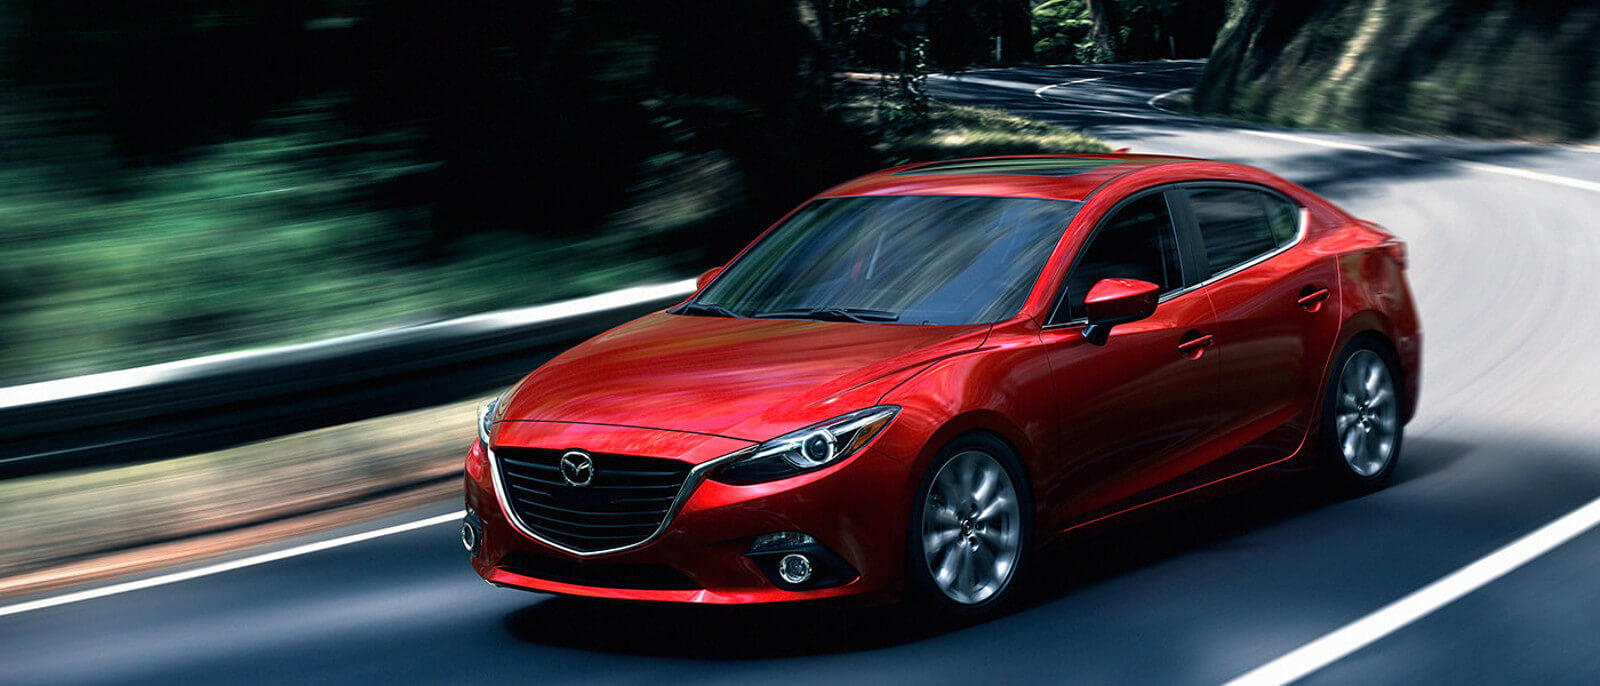 2016 Mazda3 front view